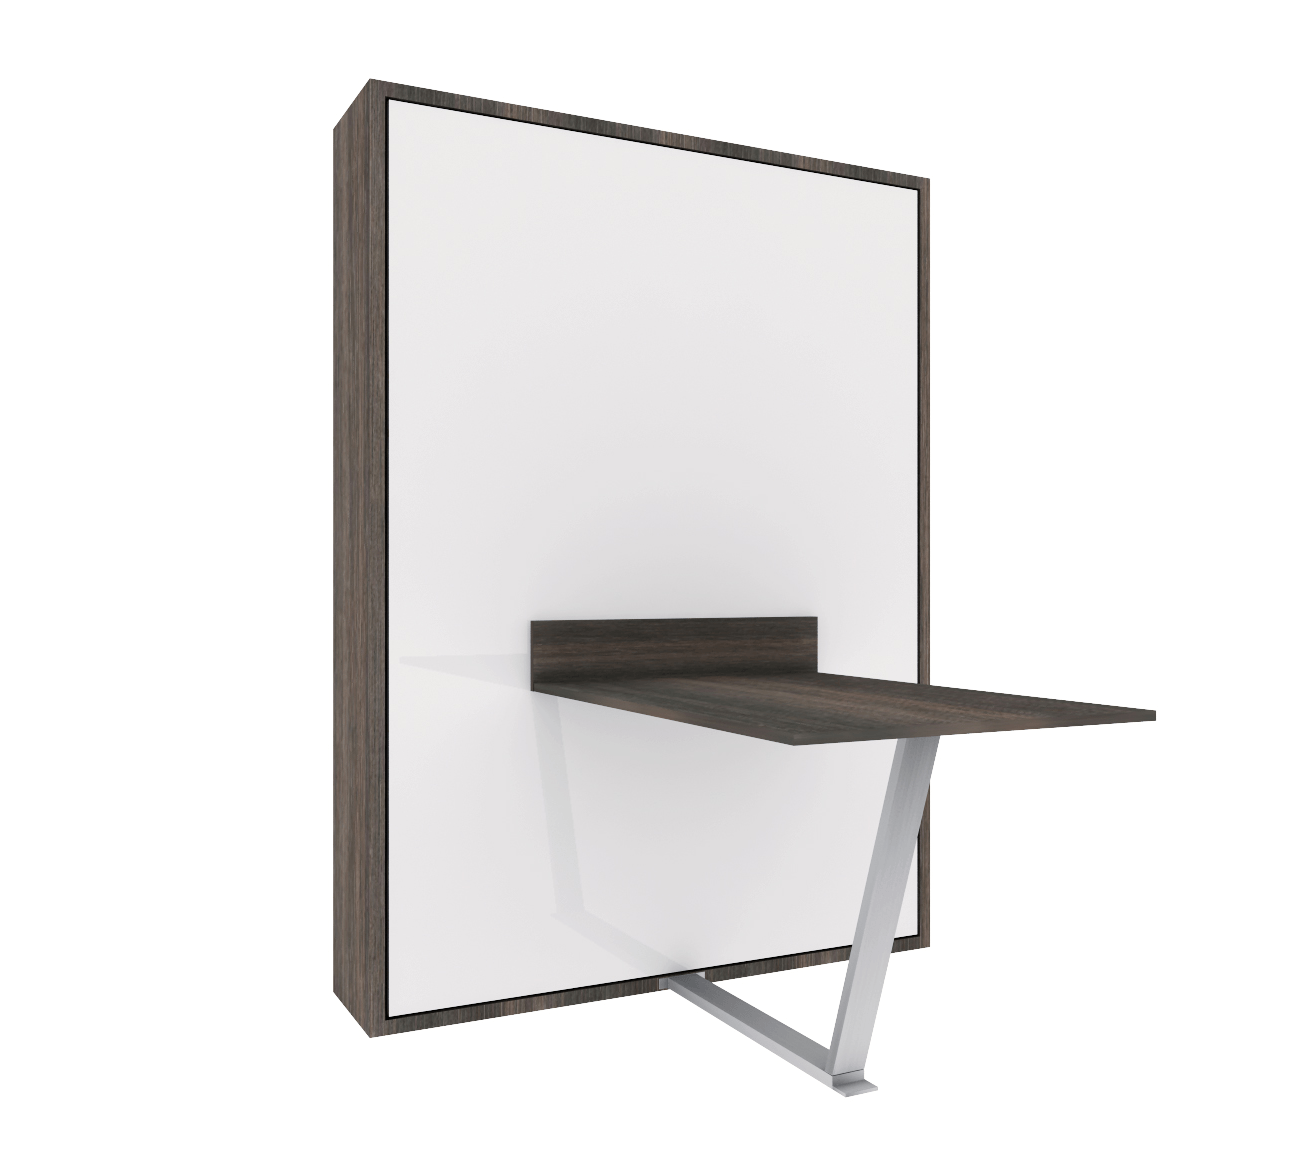 Pat rabatabil Vertical cu masa – SmartBed Table